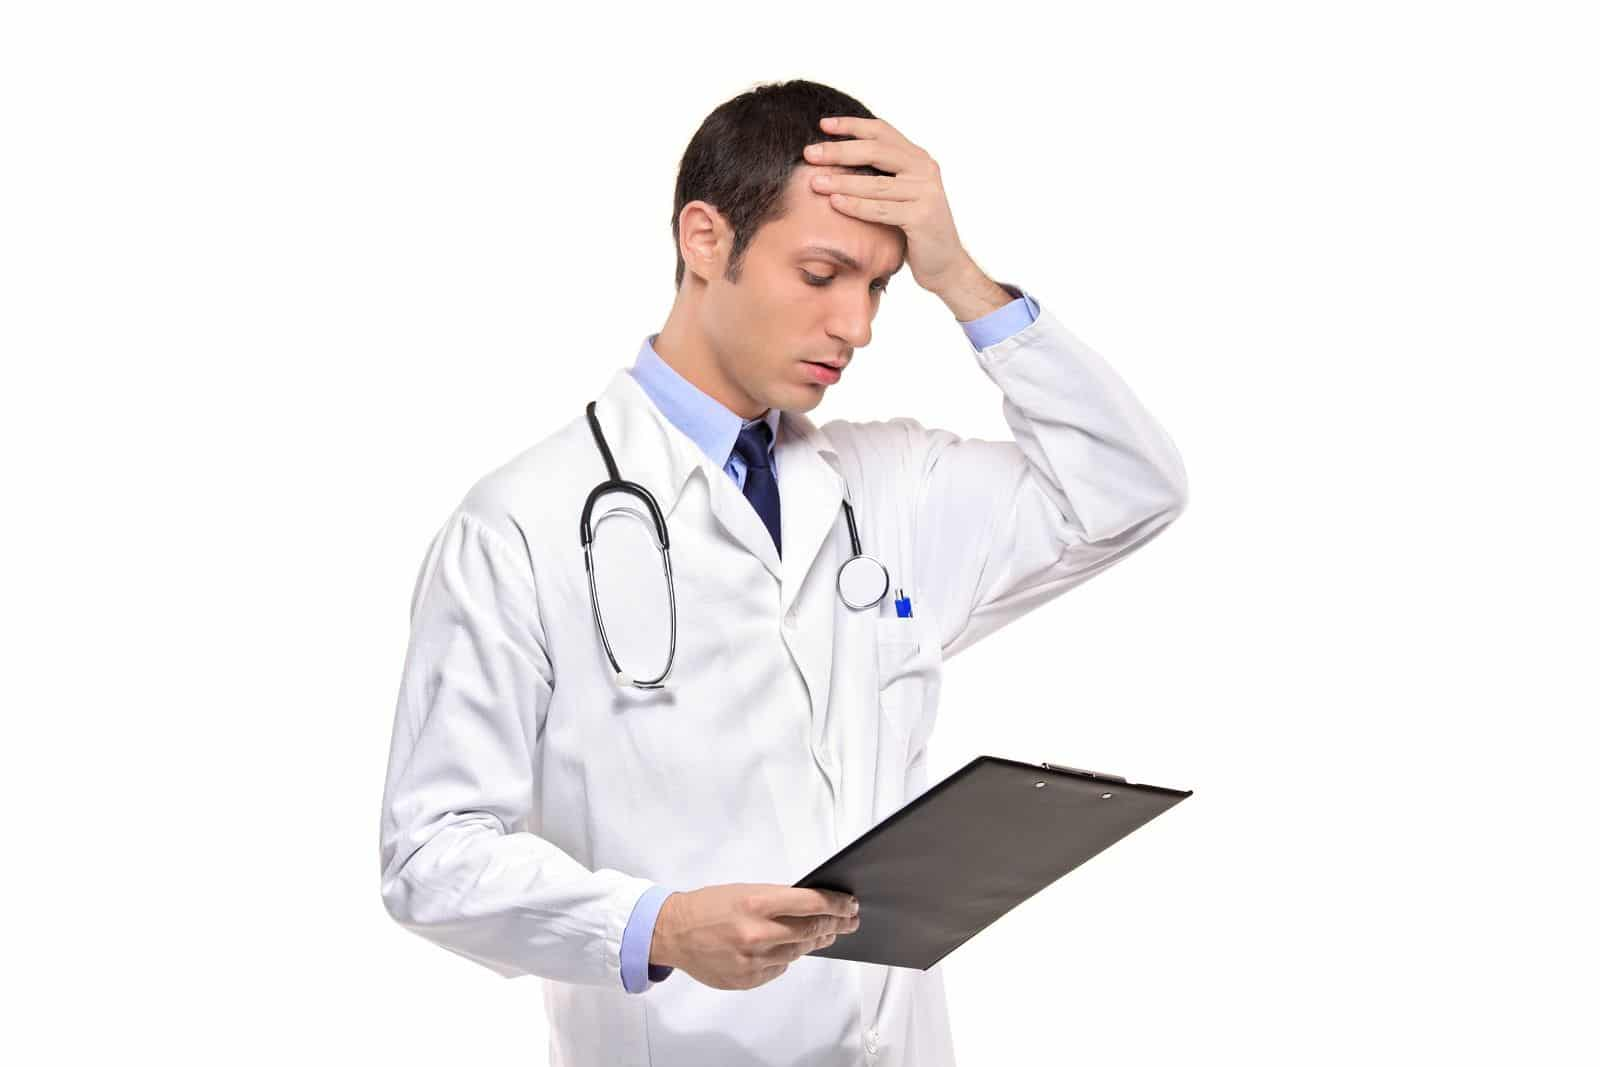 3 Situations When You'll Need Help from Medical Malpractice Lawyers